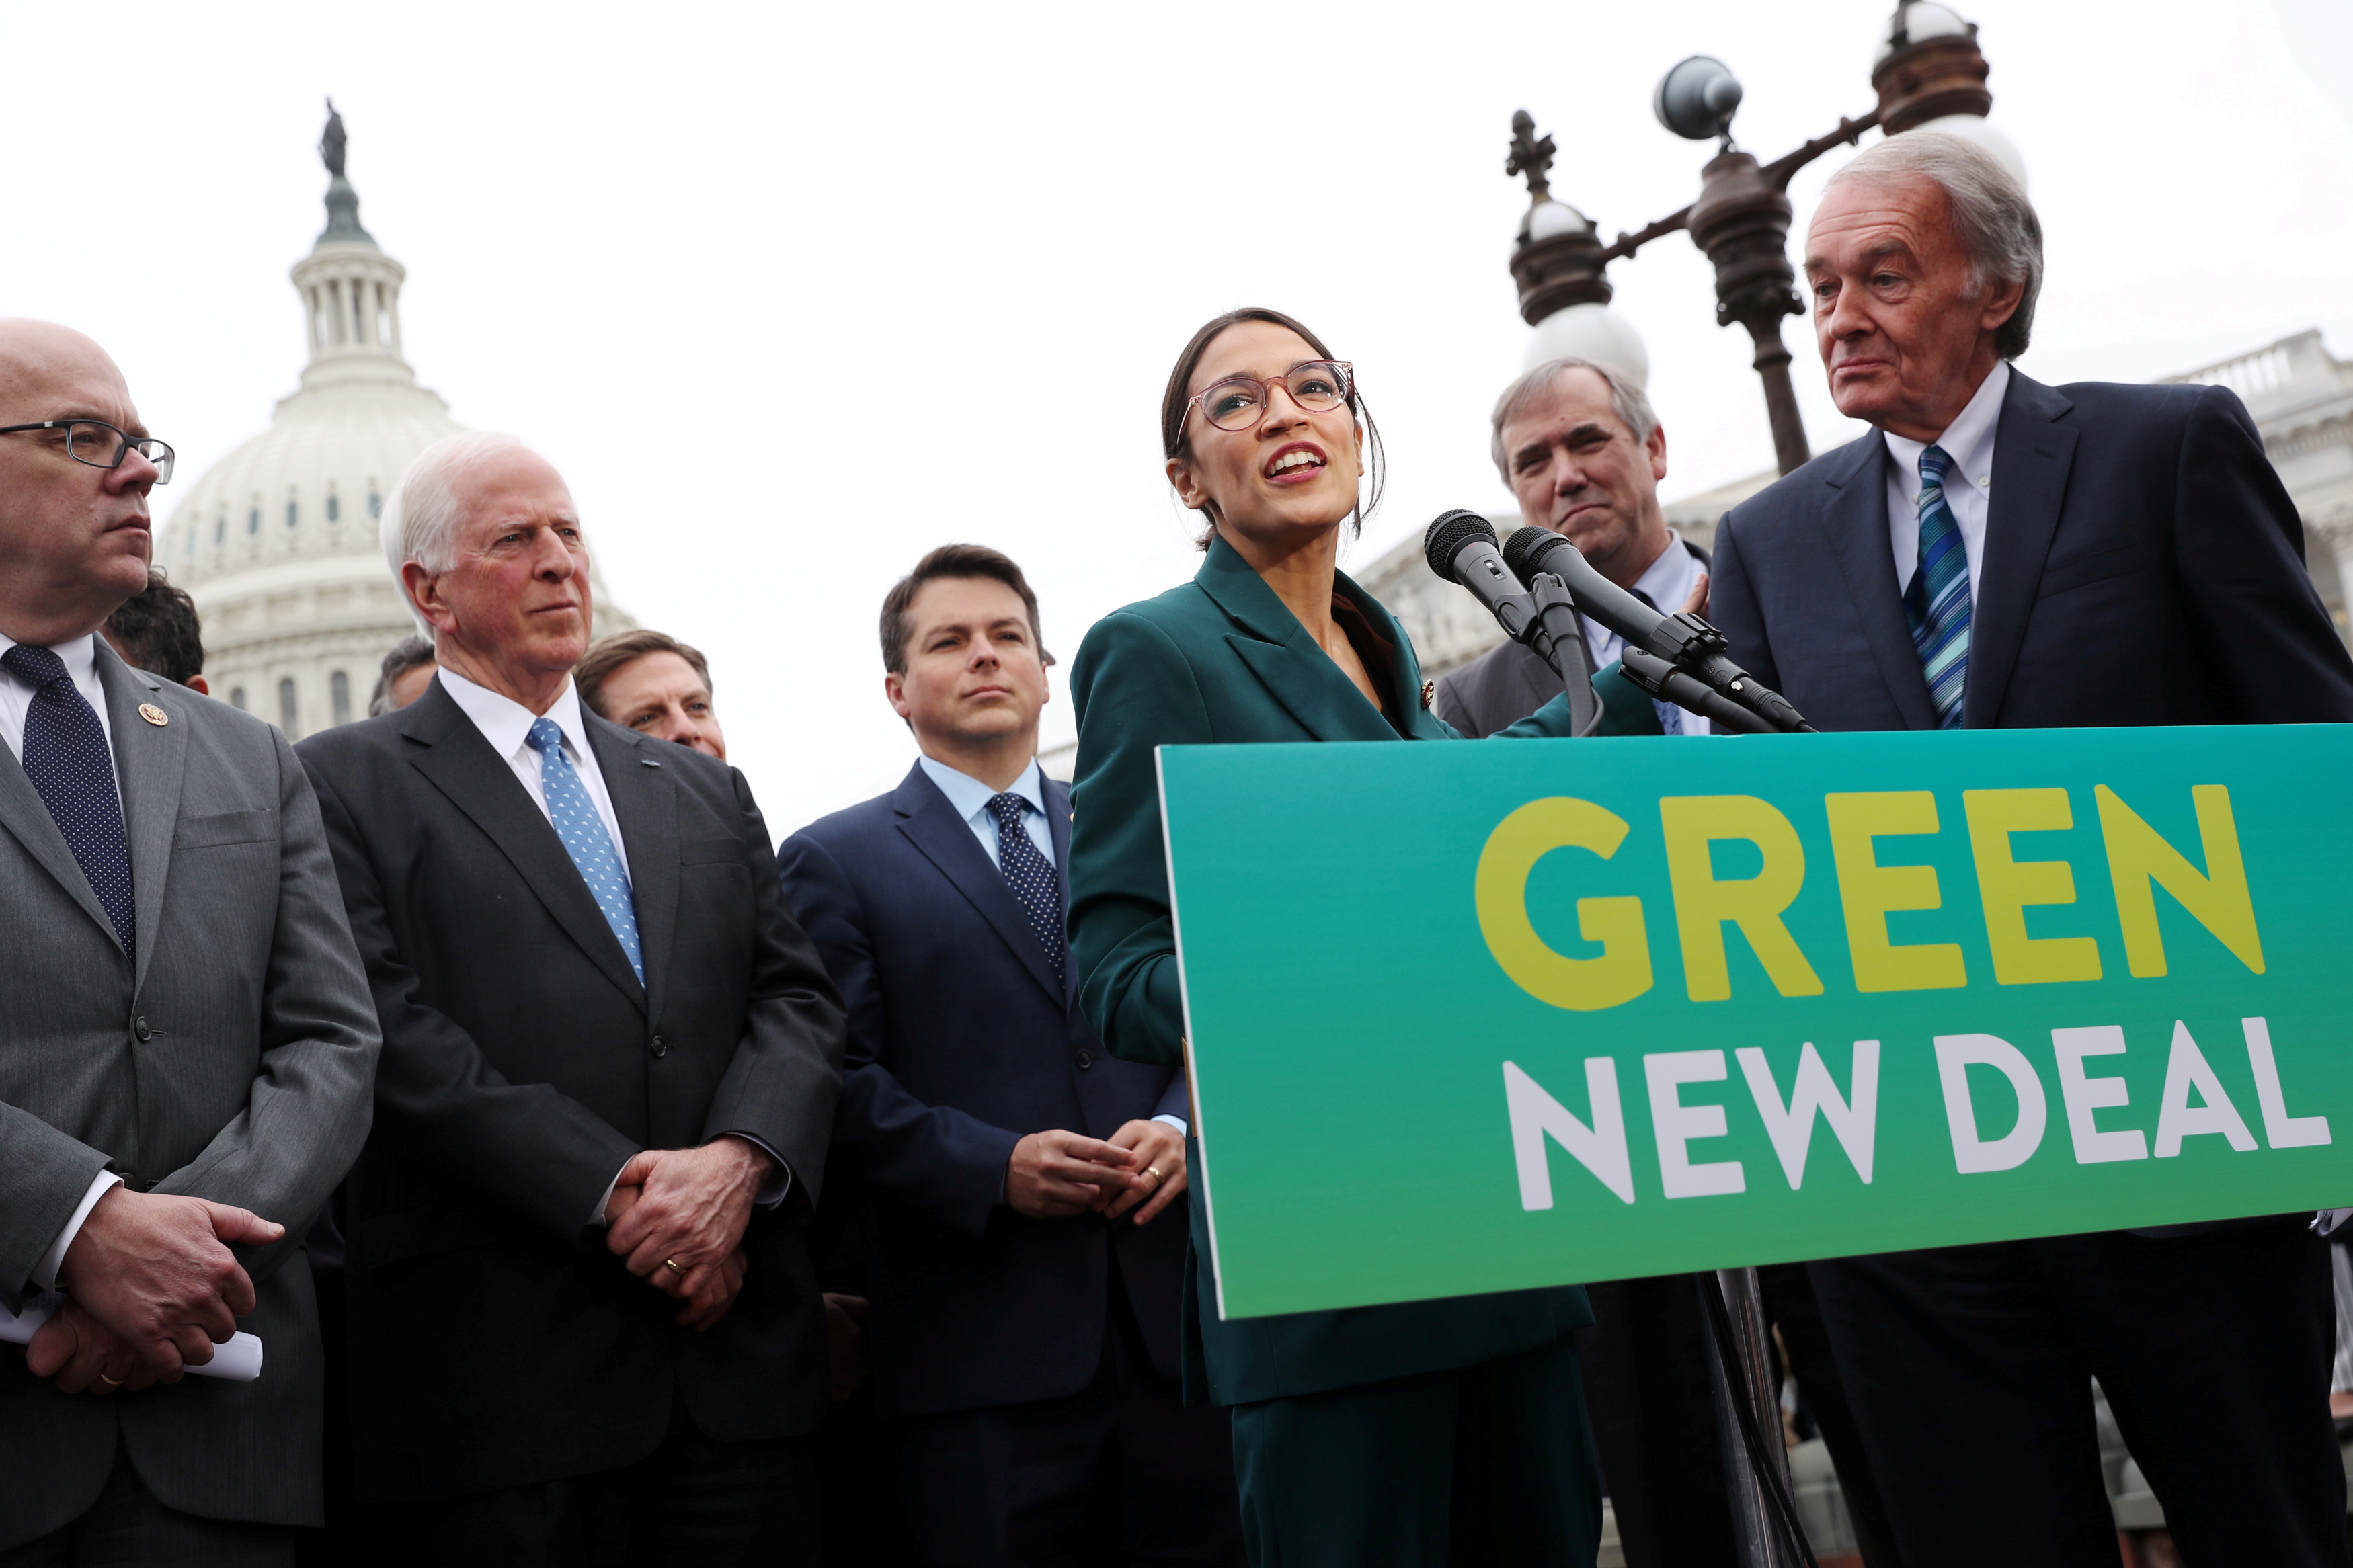 "U.S. Representative Alexandria Ocasio-Cortez and Senator Ed Markey hold a news conference for their proposed ""Green New Deal"" to achieve net-zero greenhouse gas emissions in 10 years, at the U.S. Capitol in Washington, U.S., Feb. 7, 2019. REUTERS/Jonathan Ernst"